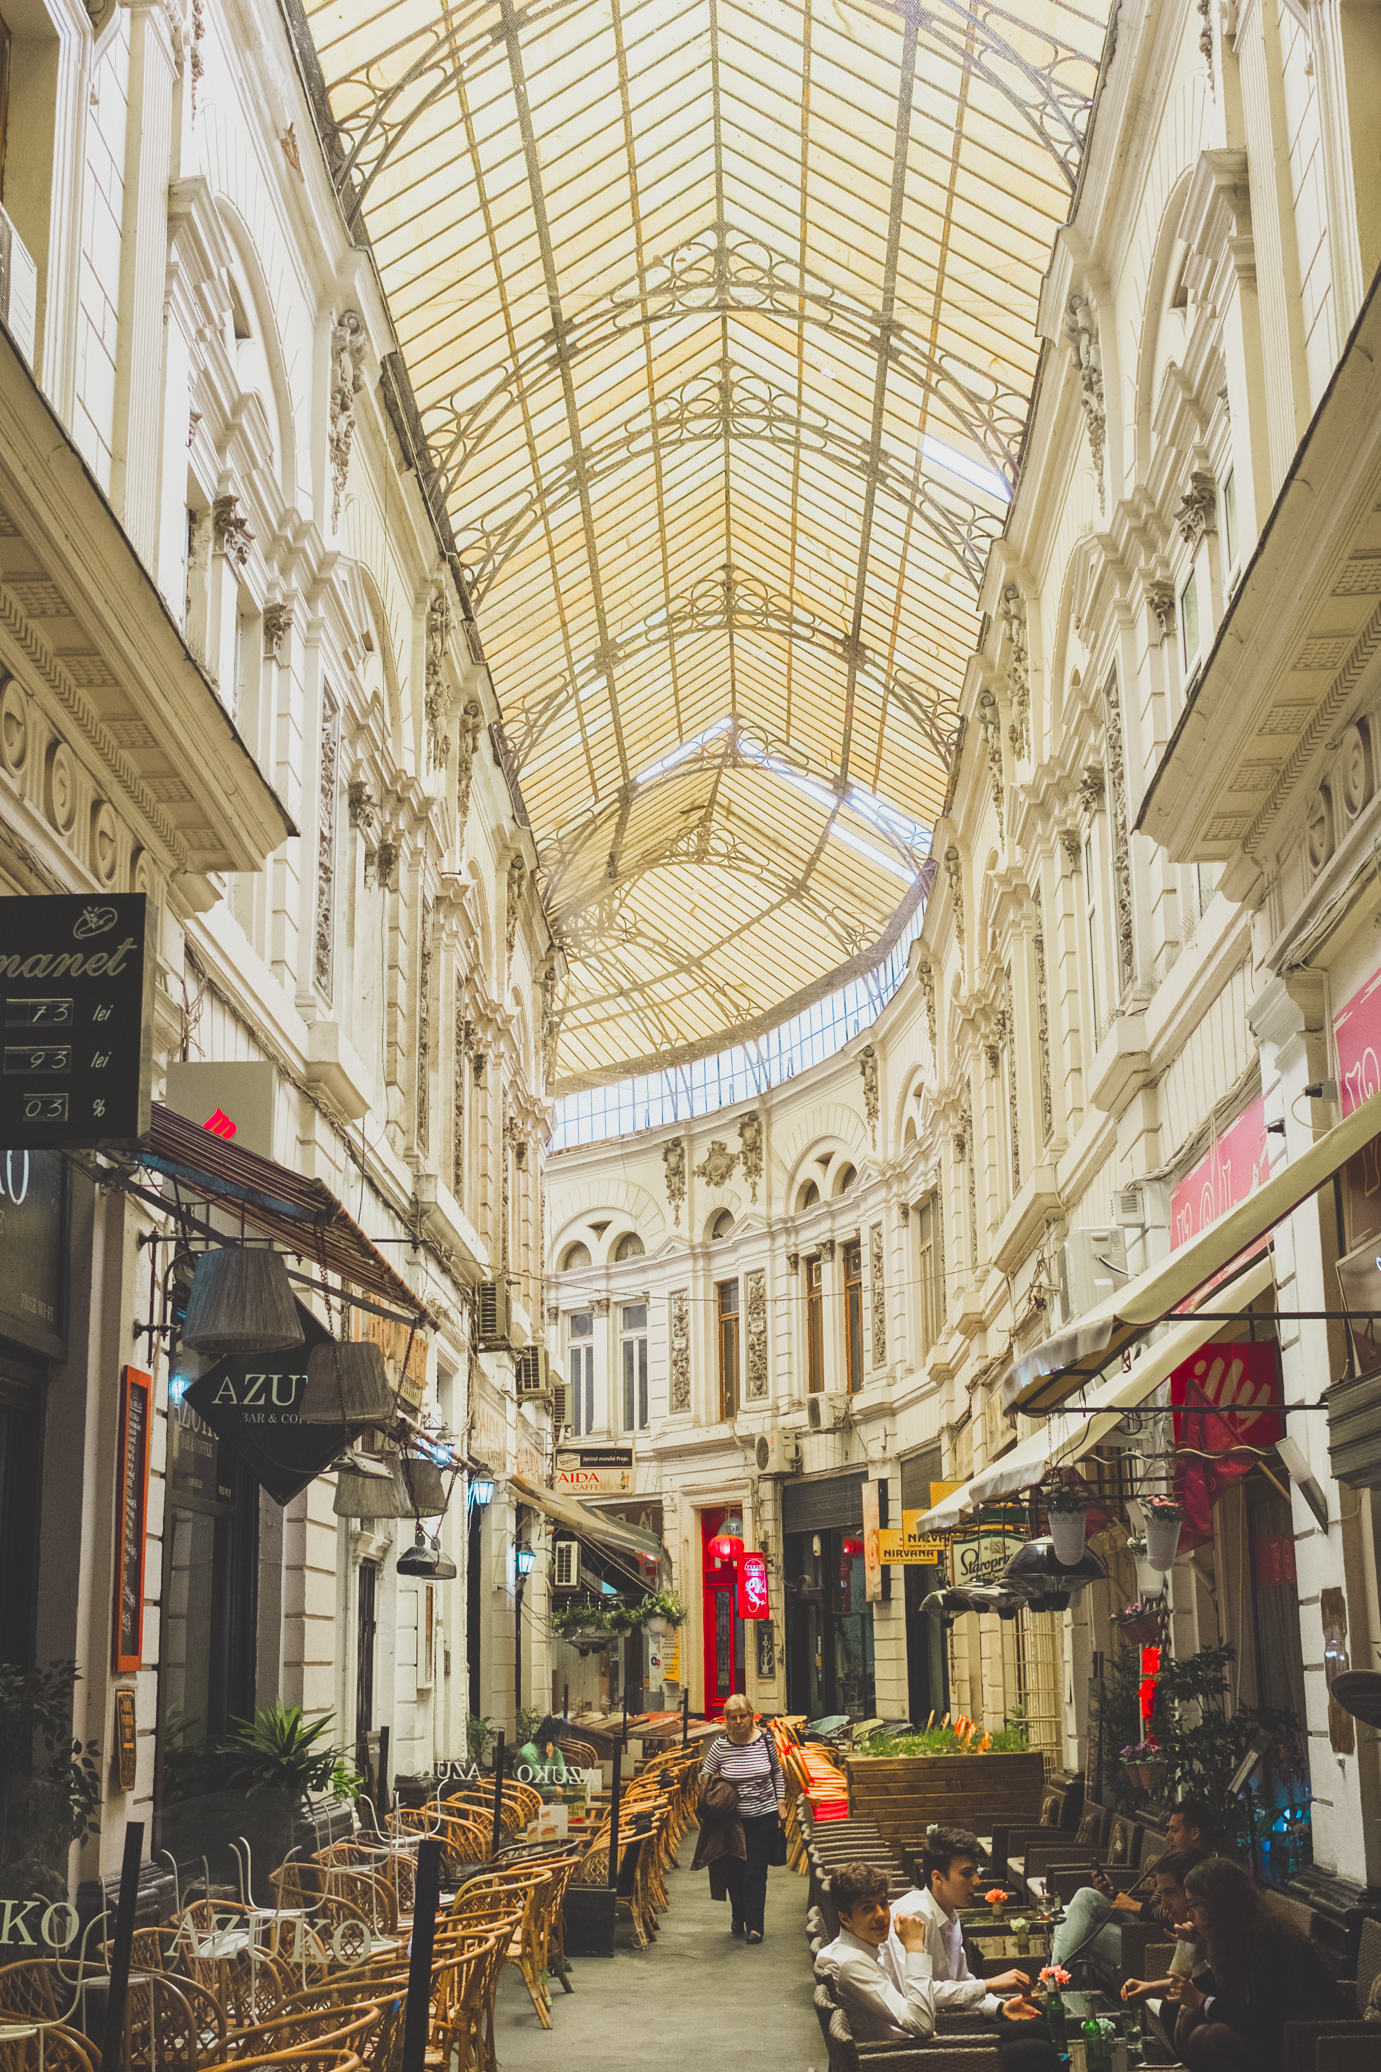 Bucharest Hidden Gems - Your foodie guides to Bucharest - A complete list of all the restaurants, bars, and coffee shop in #Bucharest  #Romania